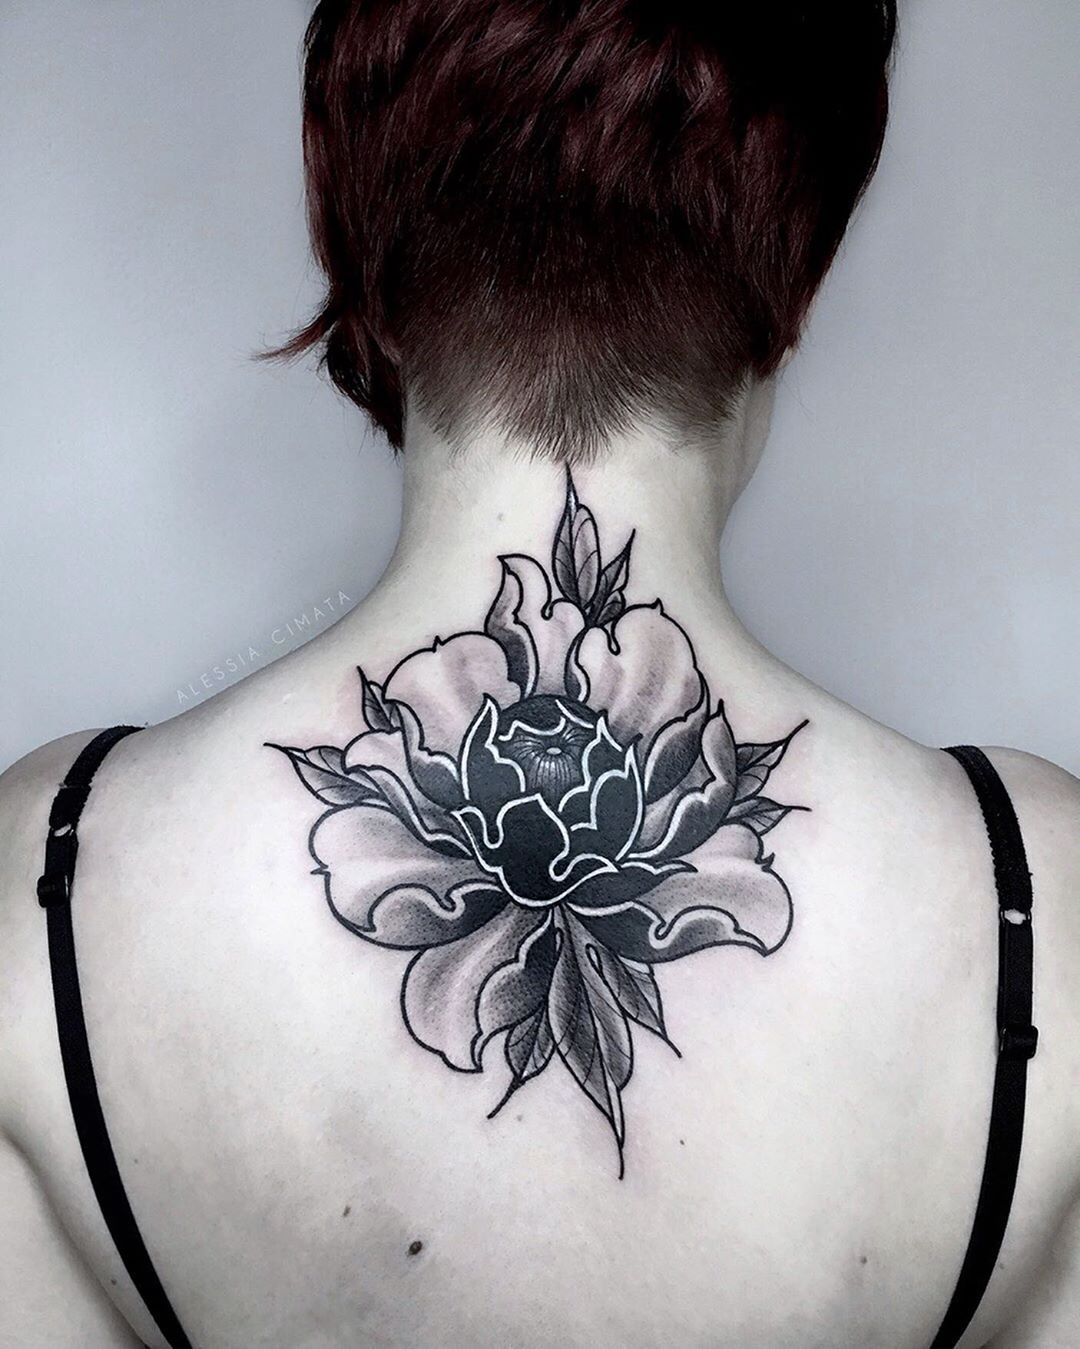 Peony 🤍 . Old work done on the lovely @moxie.sketches 🤍 Swipe to see the process. . .  #peony #peonies #peonytattoo #peonytattoos #tattoo #coveruptattoo #peonia #peoniatattoo #coveruptattoos #flowers #flowertattoo #coverup #neotraditional #apprenticetattoo #neotraditionaltattoo #apprenticetattooer #apprenticetattooist #tattooart #tattooartist #blackandwhitephoto #blackandwhitetattoo #picoftheday #pictureoftheday #photooftheday #tattoooftheday #sullivantatuagens #snaptweet #artwork_support #pas